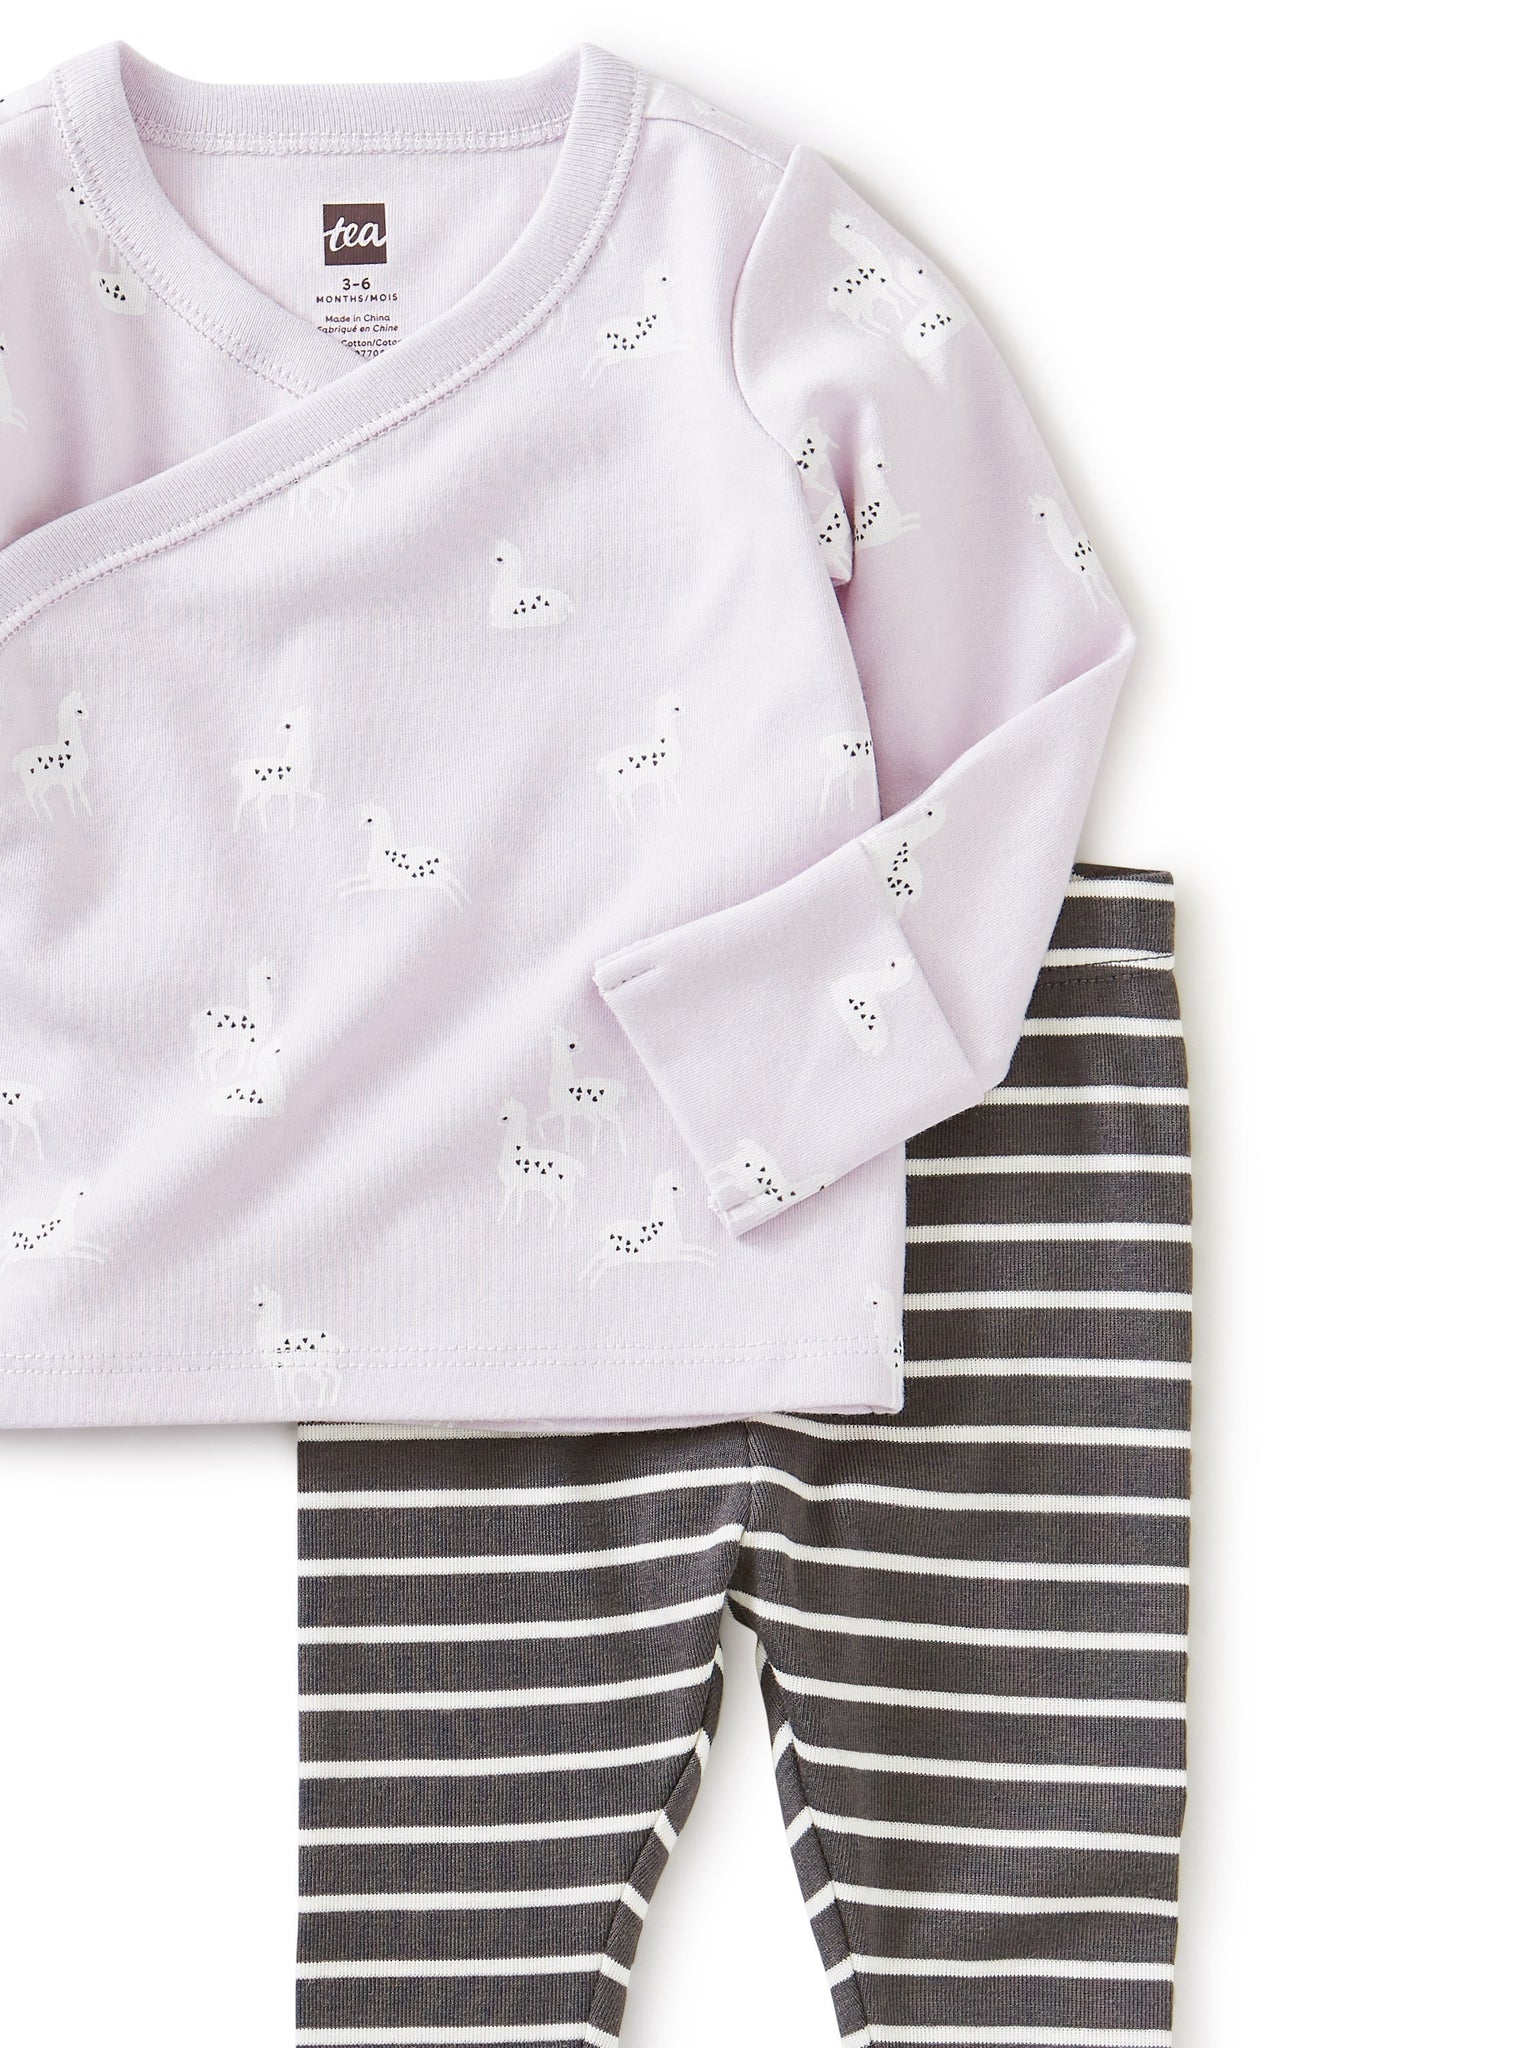 Tea Llama Bliss Wrap Top Baby Outfit